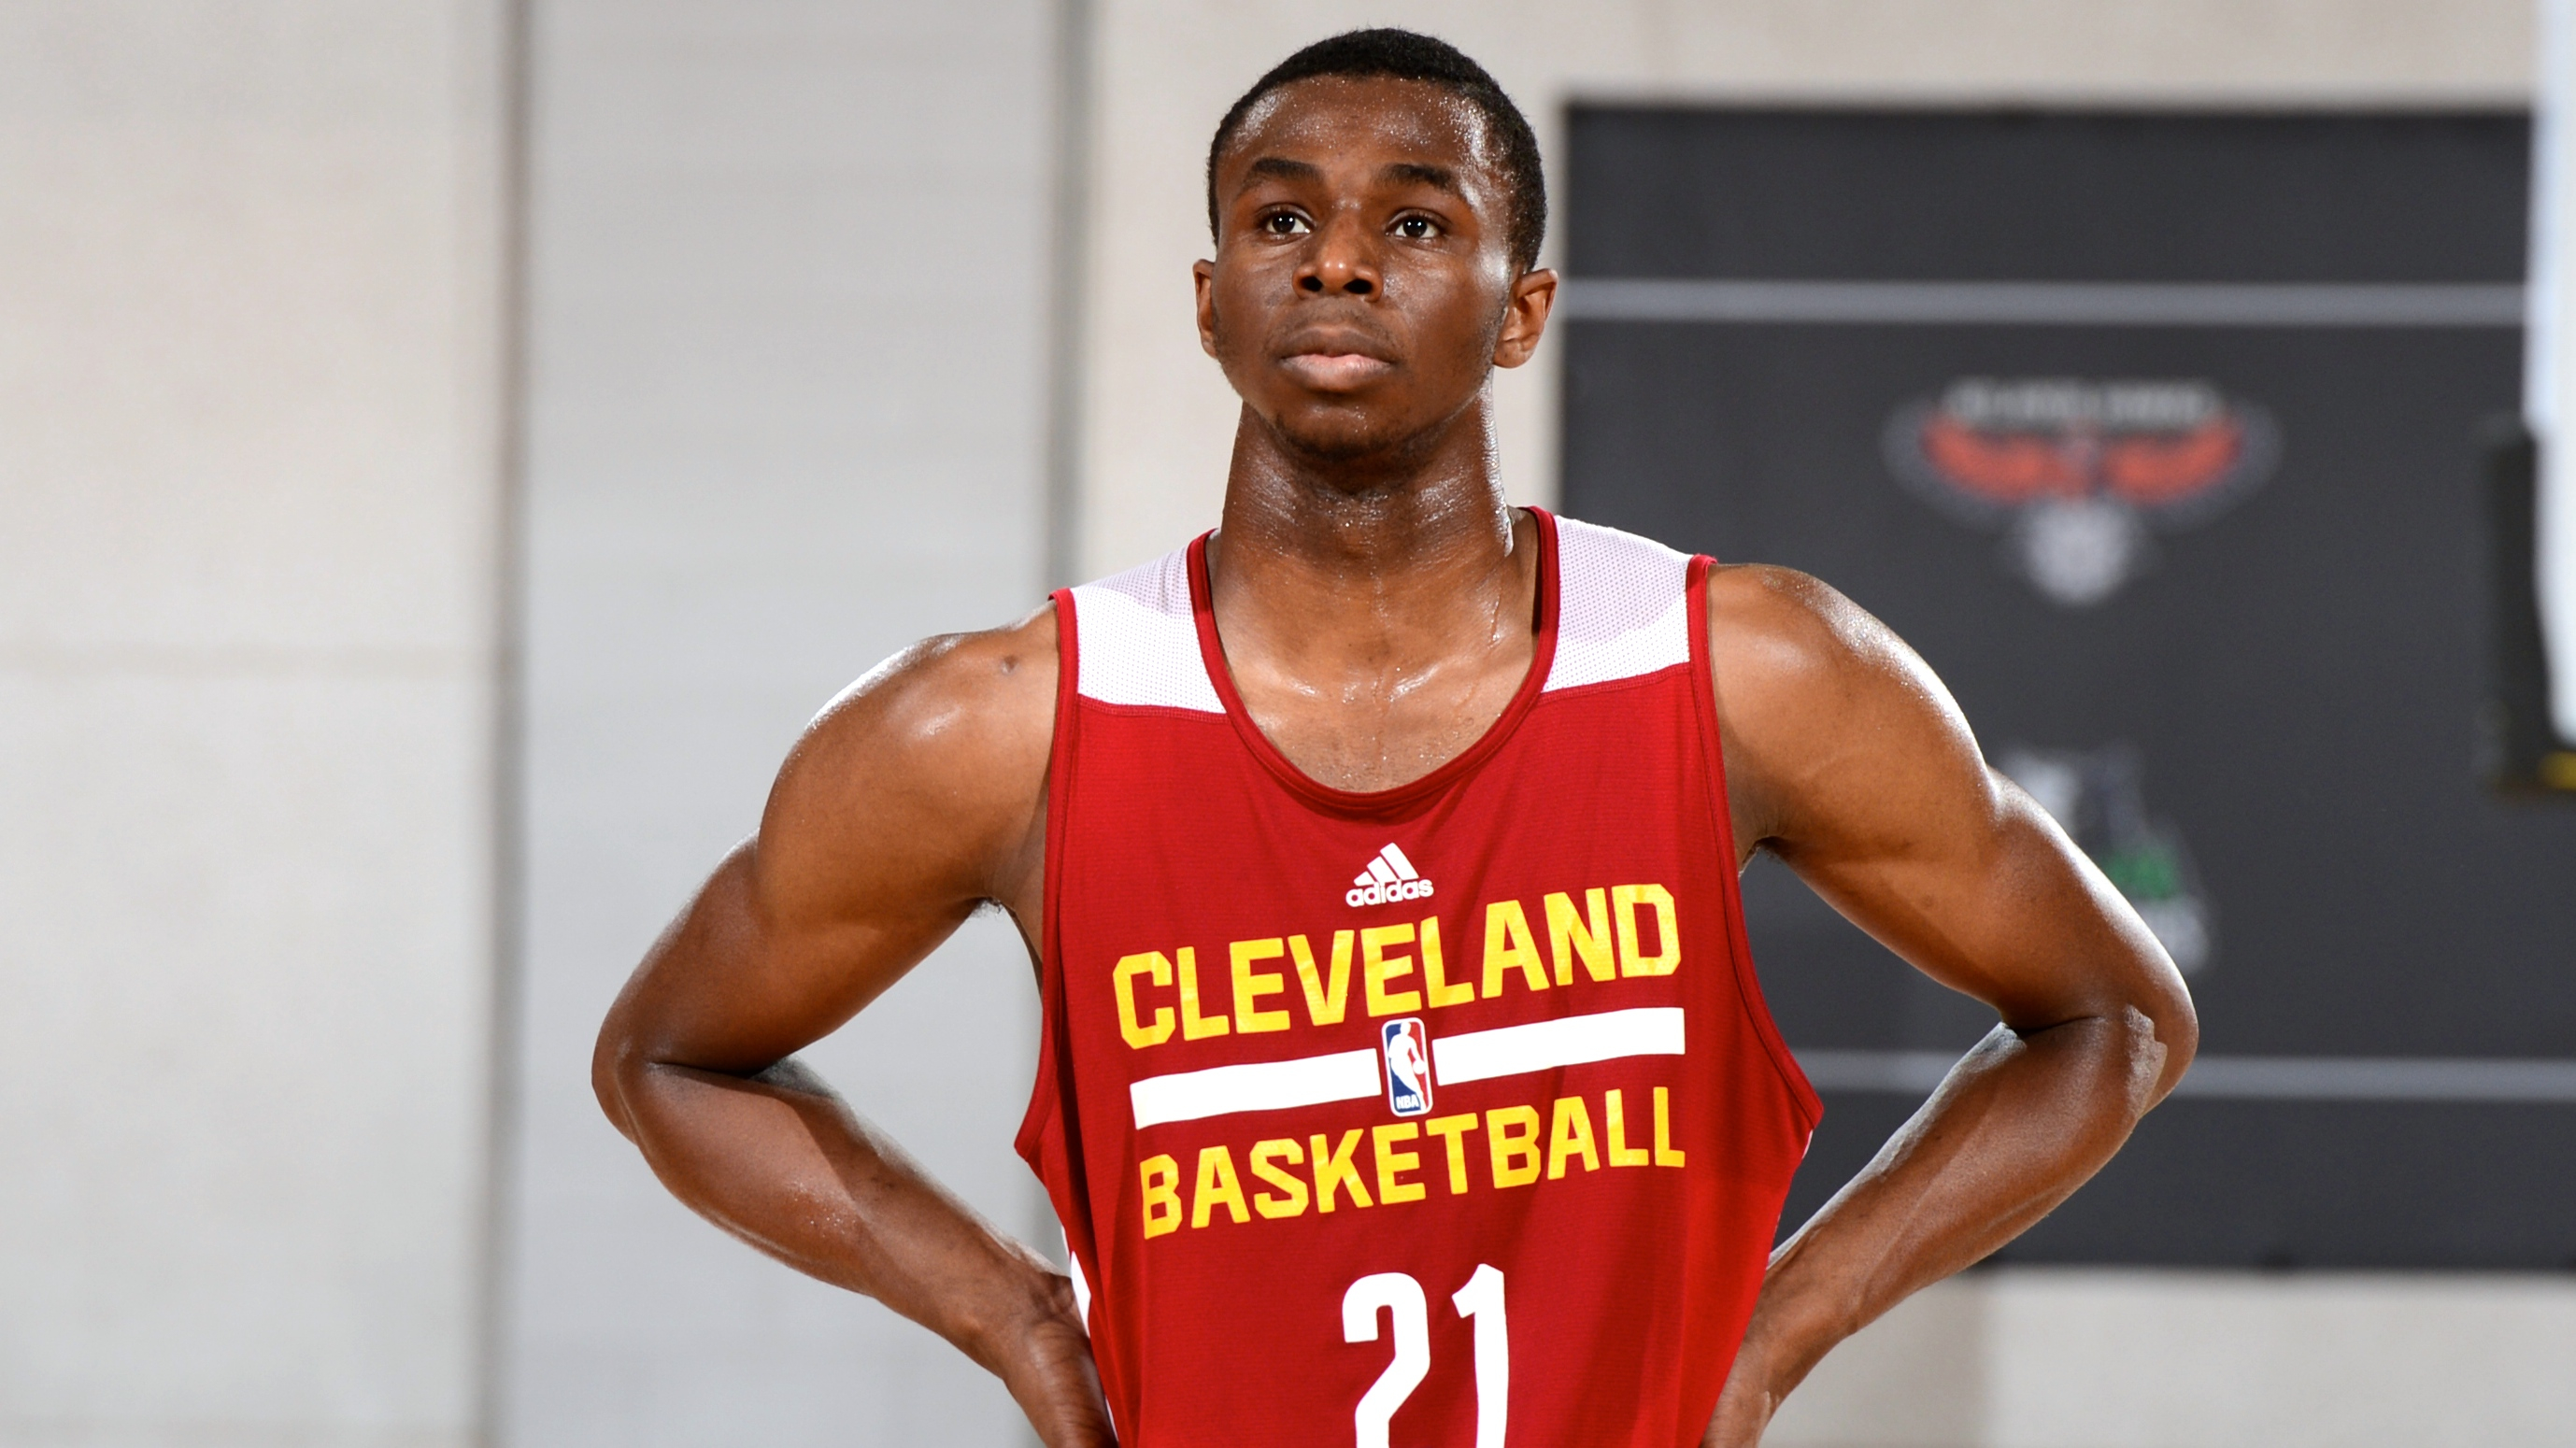 The prospect of trading Andrew Wiggins for Kevin Love may be enticing, but the Cavaliers would be smart to hold onto the No. 1 overall draft pick.